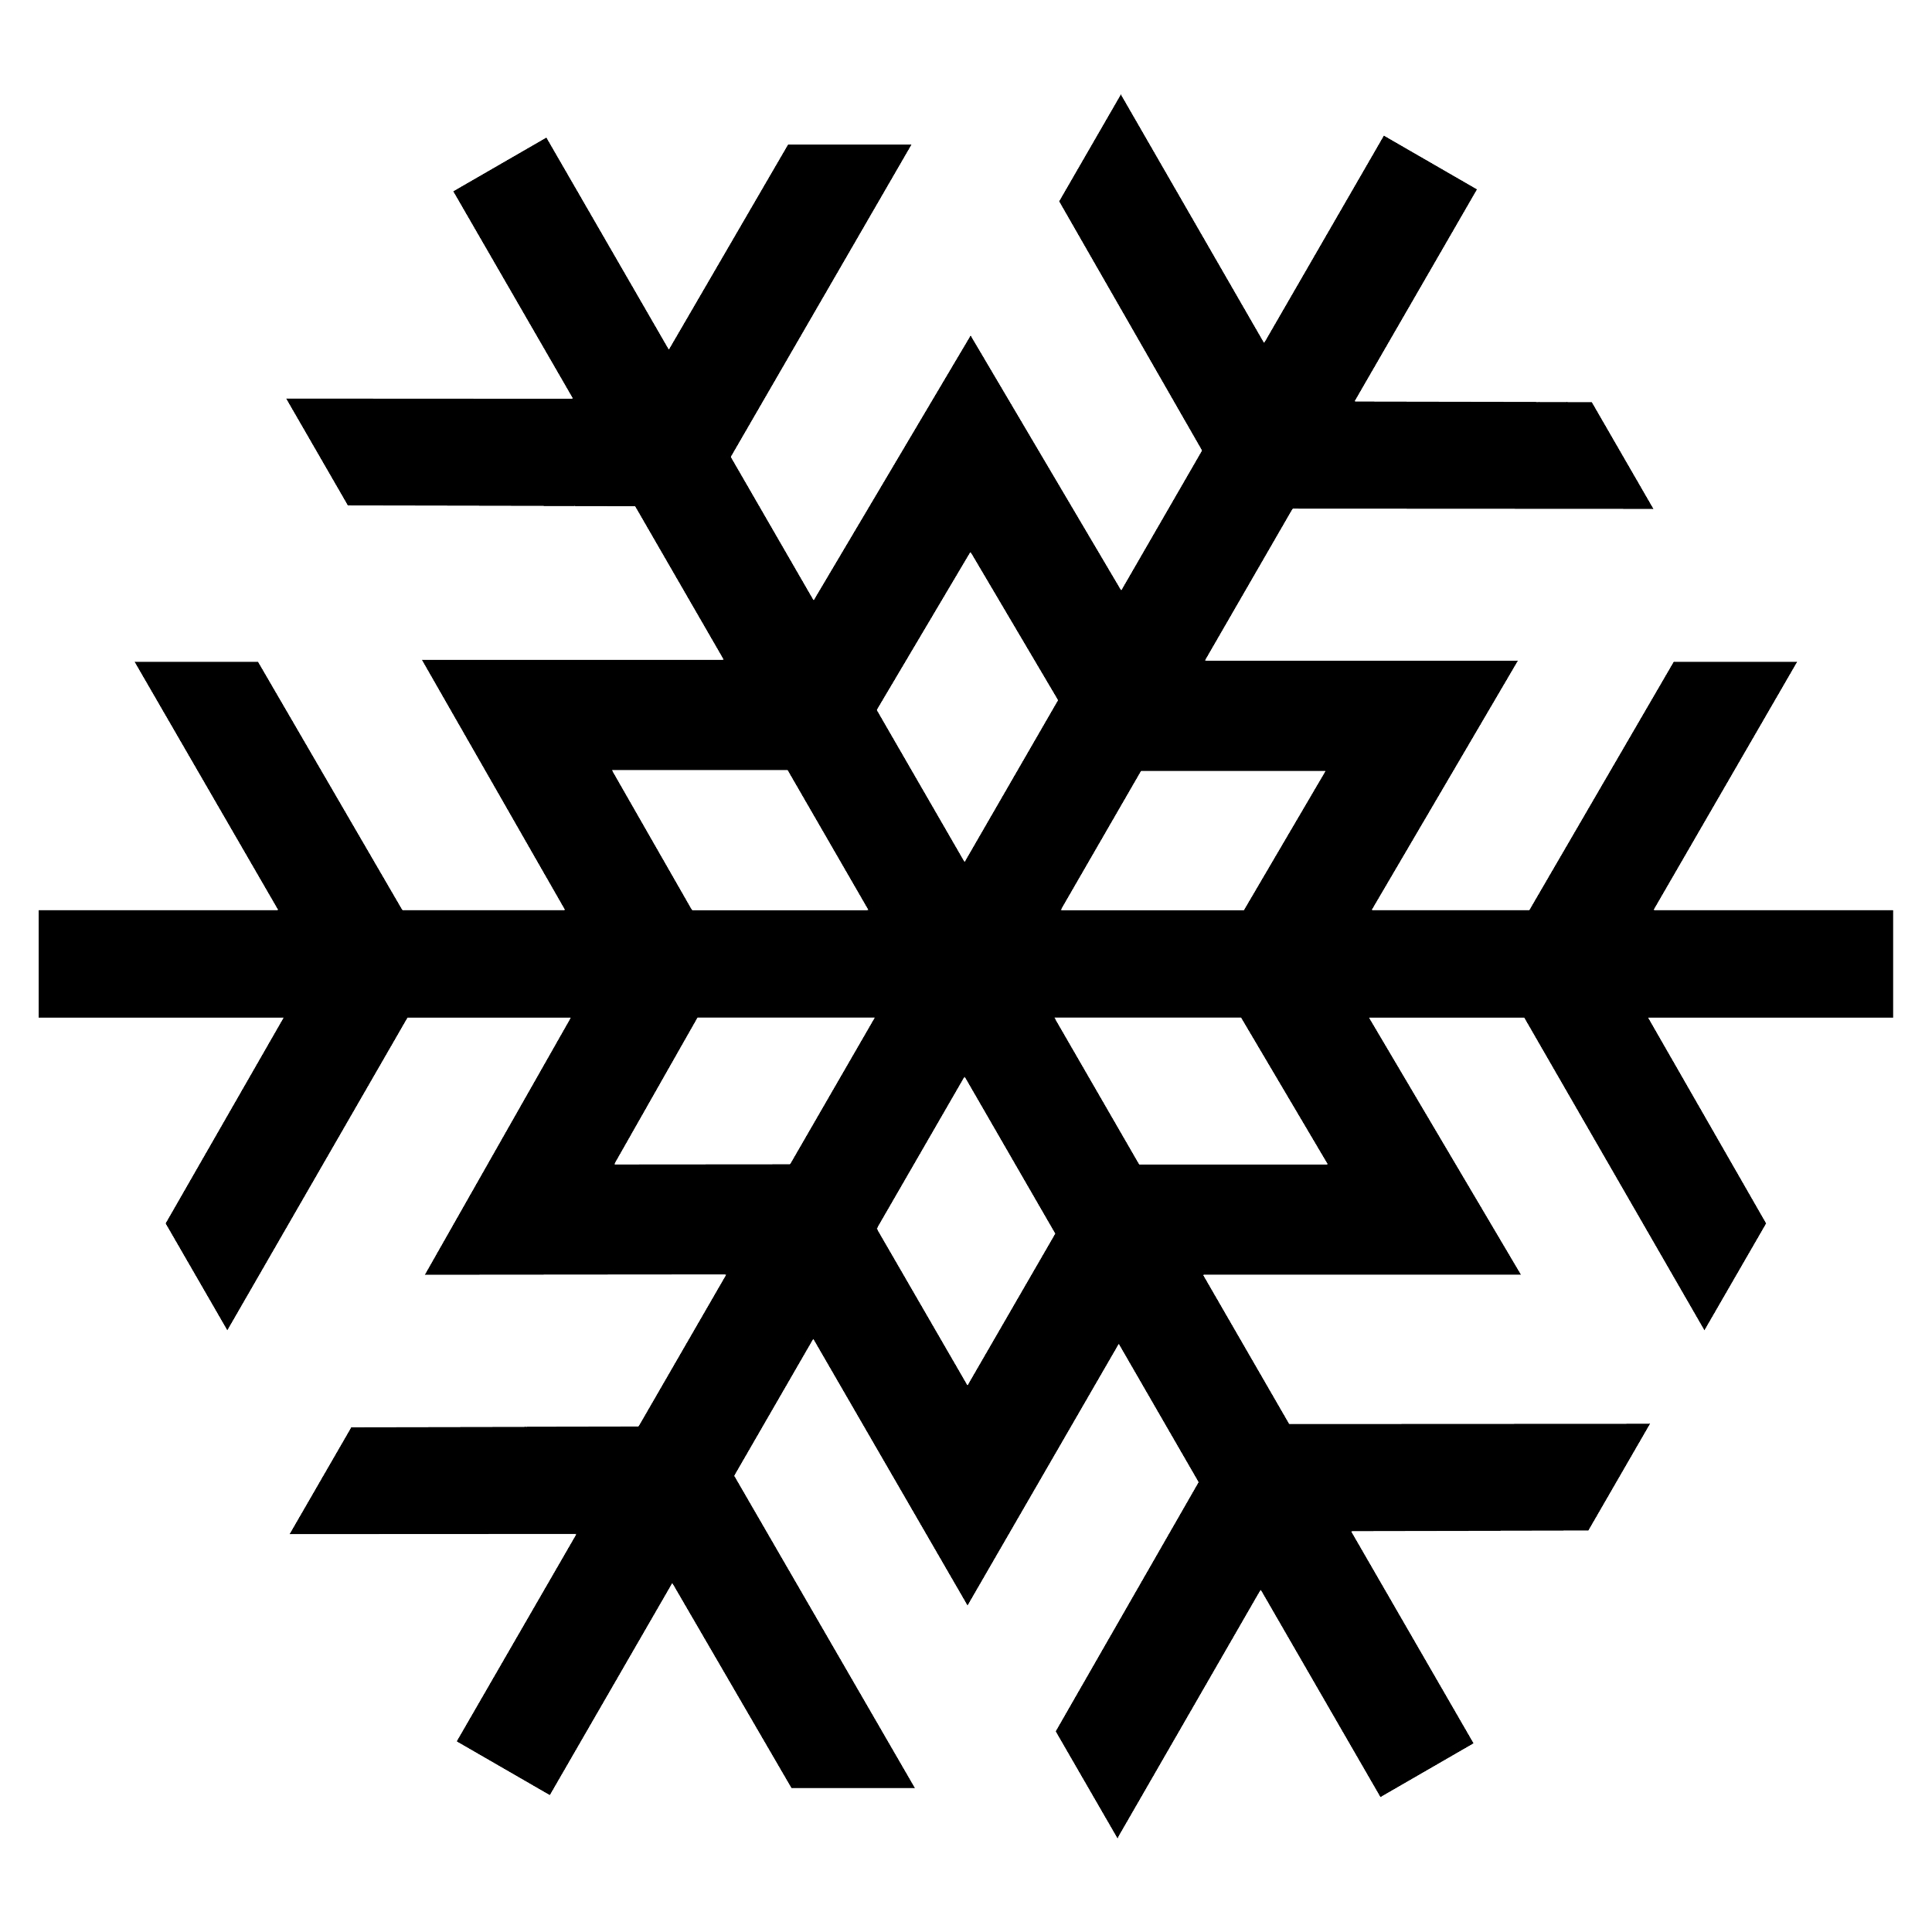 White snowflake with no background clipart picture freeuse download 28+ Collection of Chunky Snowflake Clipart | High quality, free ... picture freeuse download